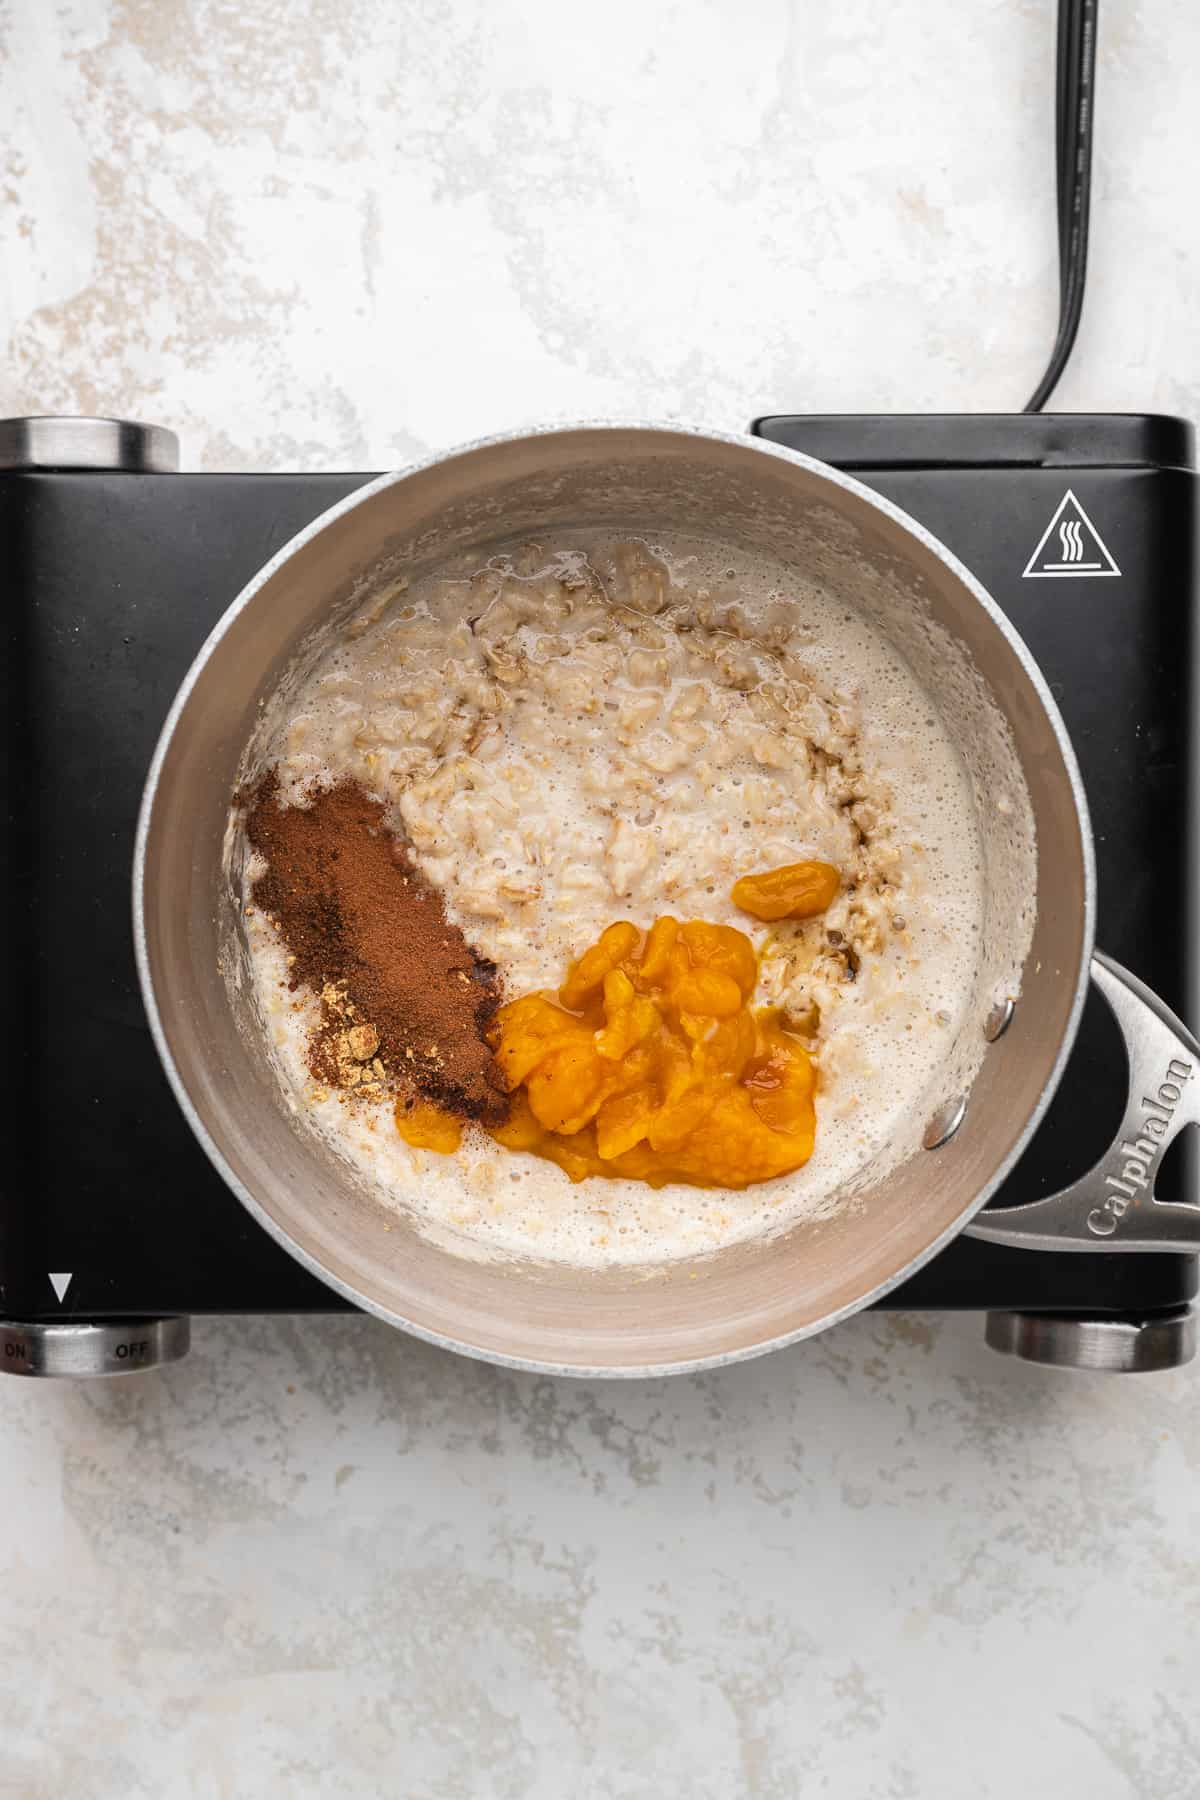 oatmeal with pumpkin puree, maple syrup, and spices cooking in a stainless steel pot.